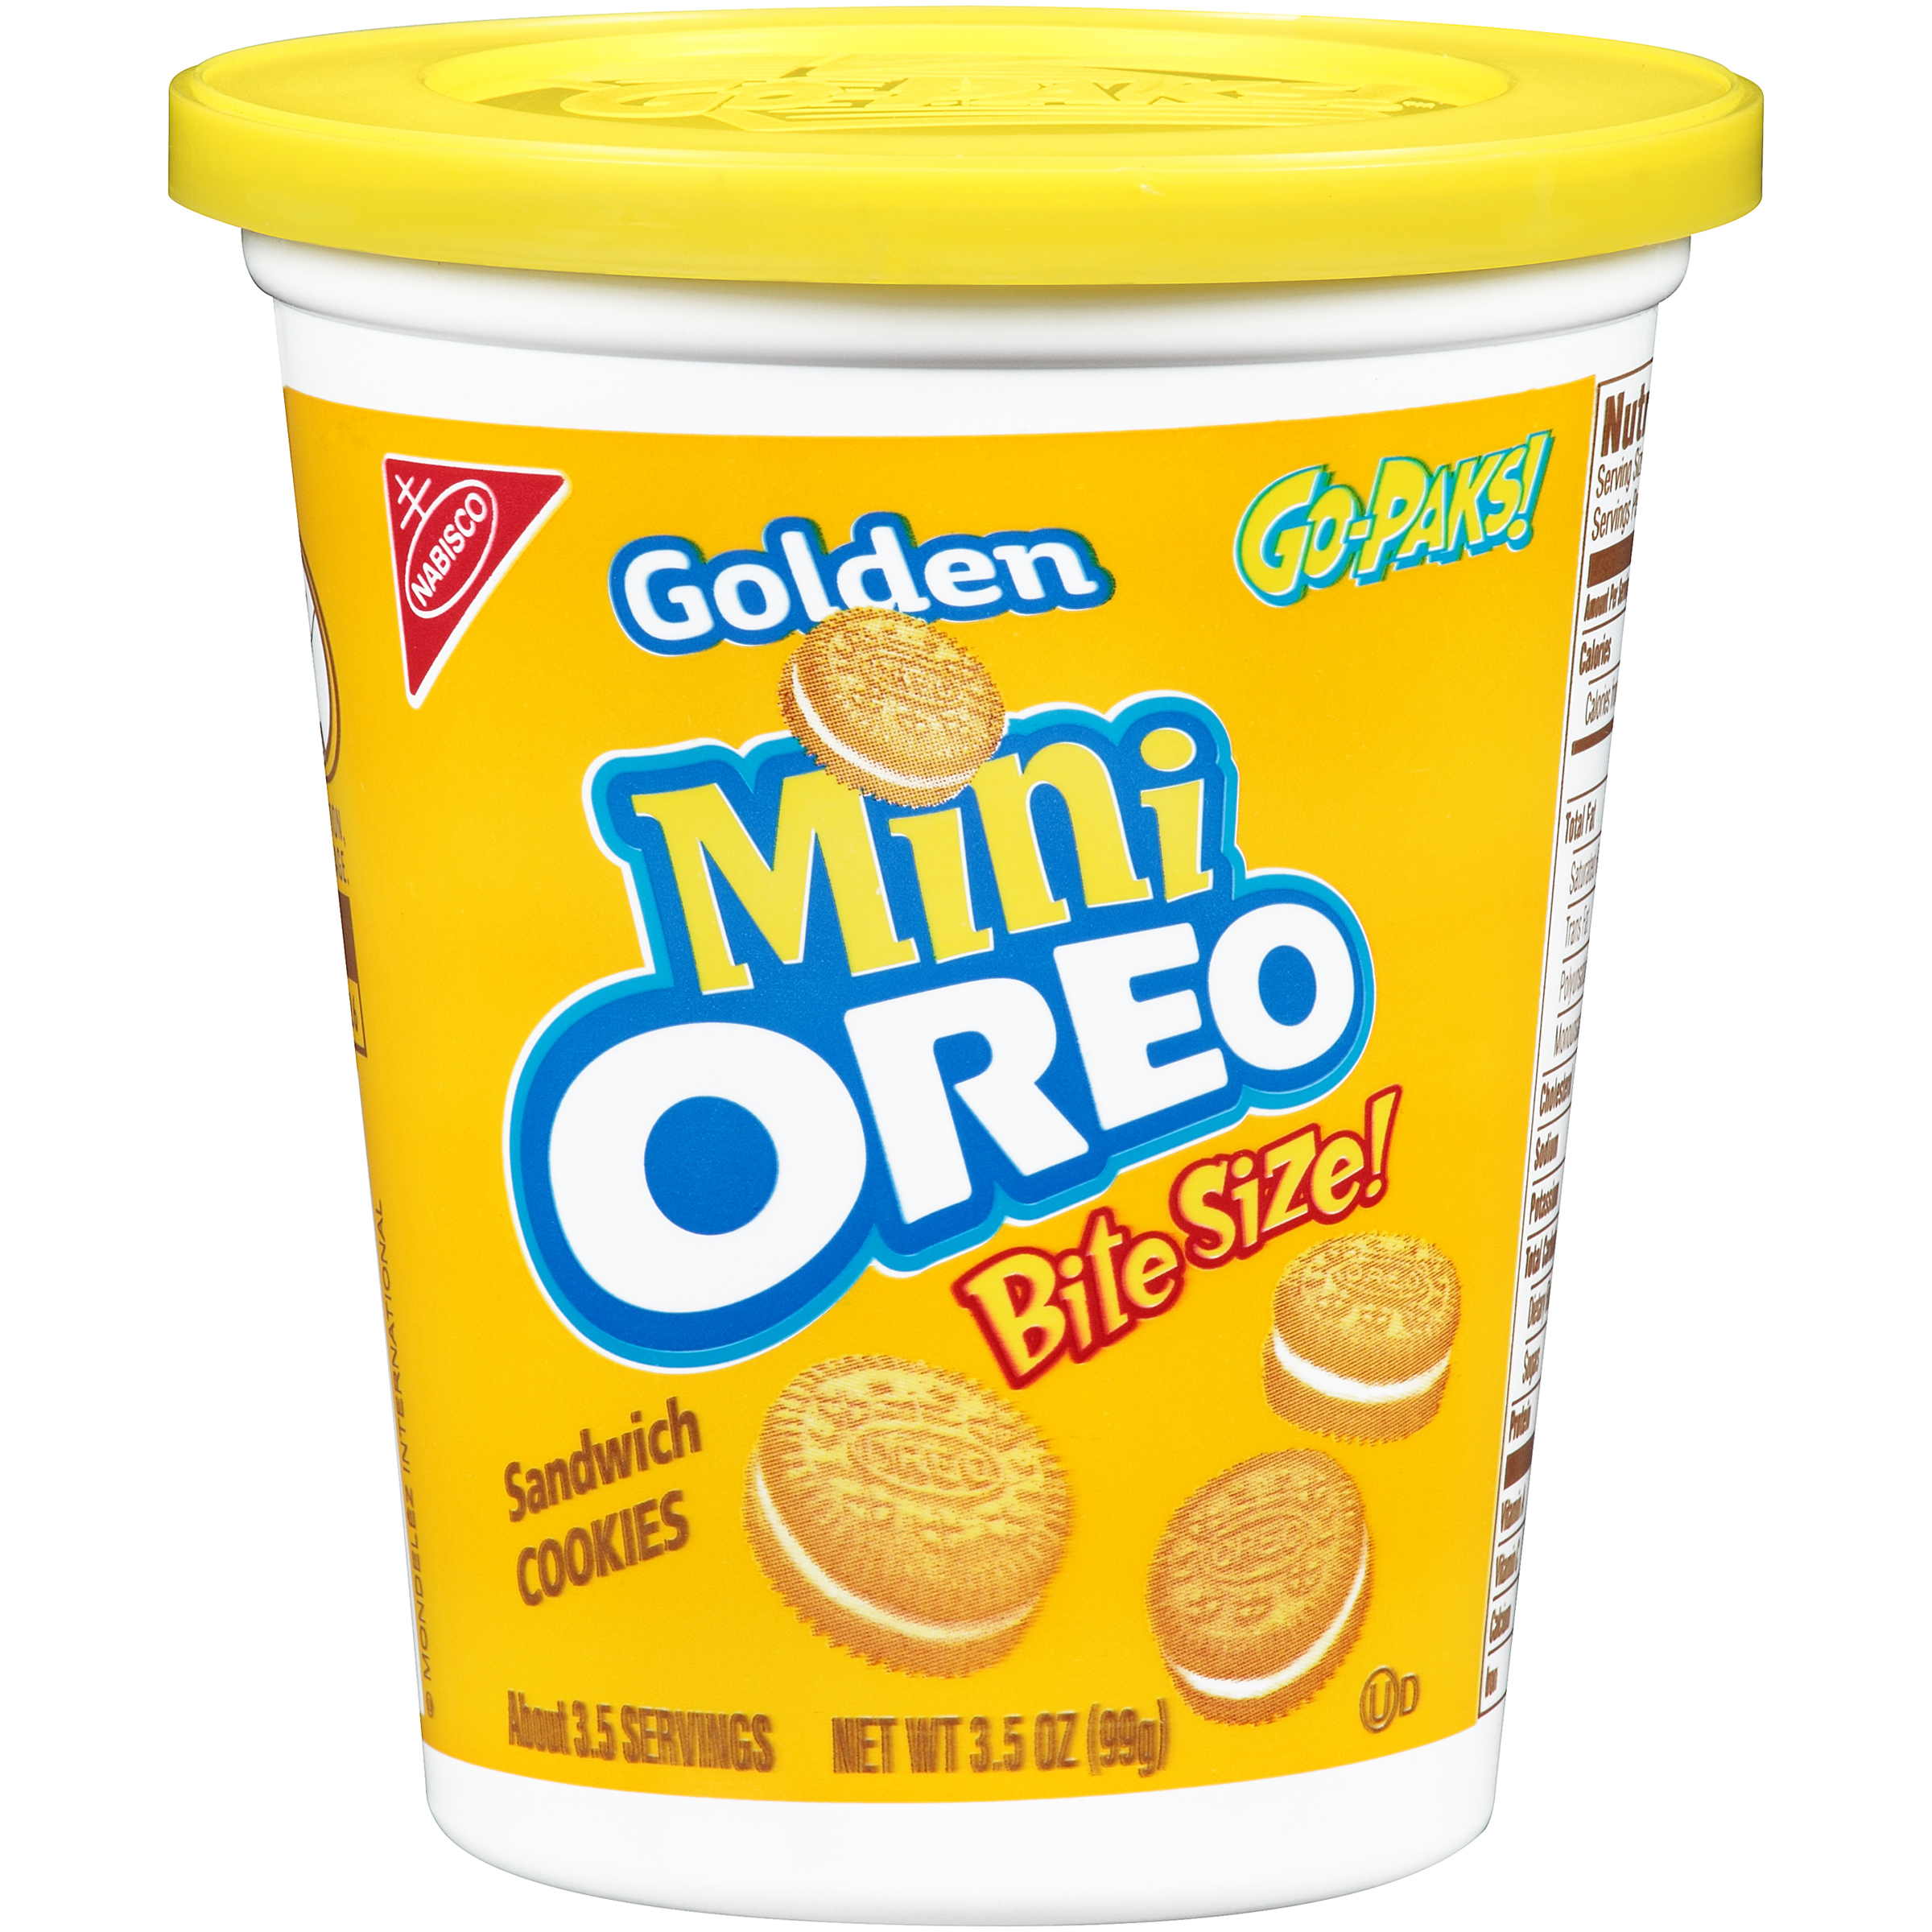 Nabisco Golden Mini Oreo Bite Size Sandwich Cookies, 3.5 OZ